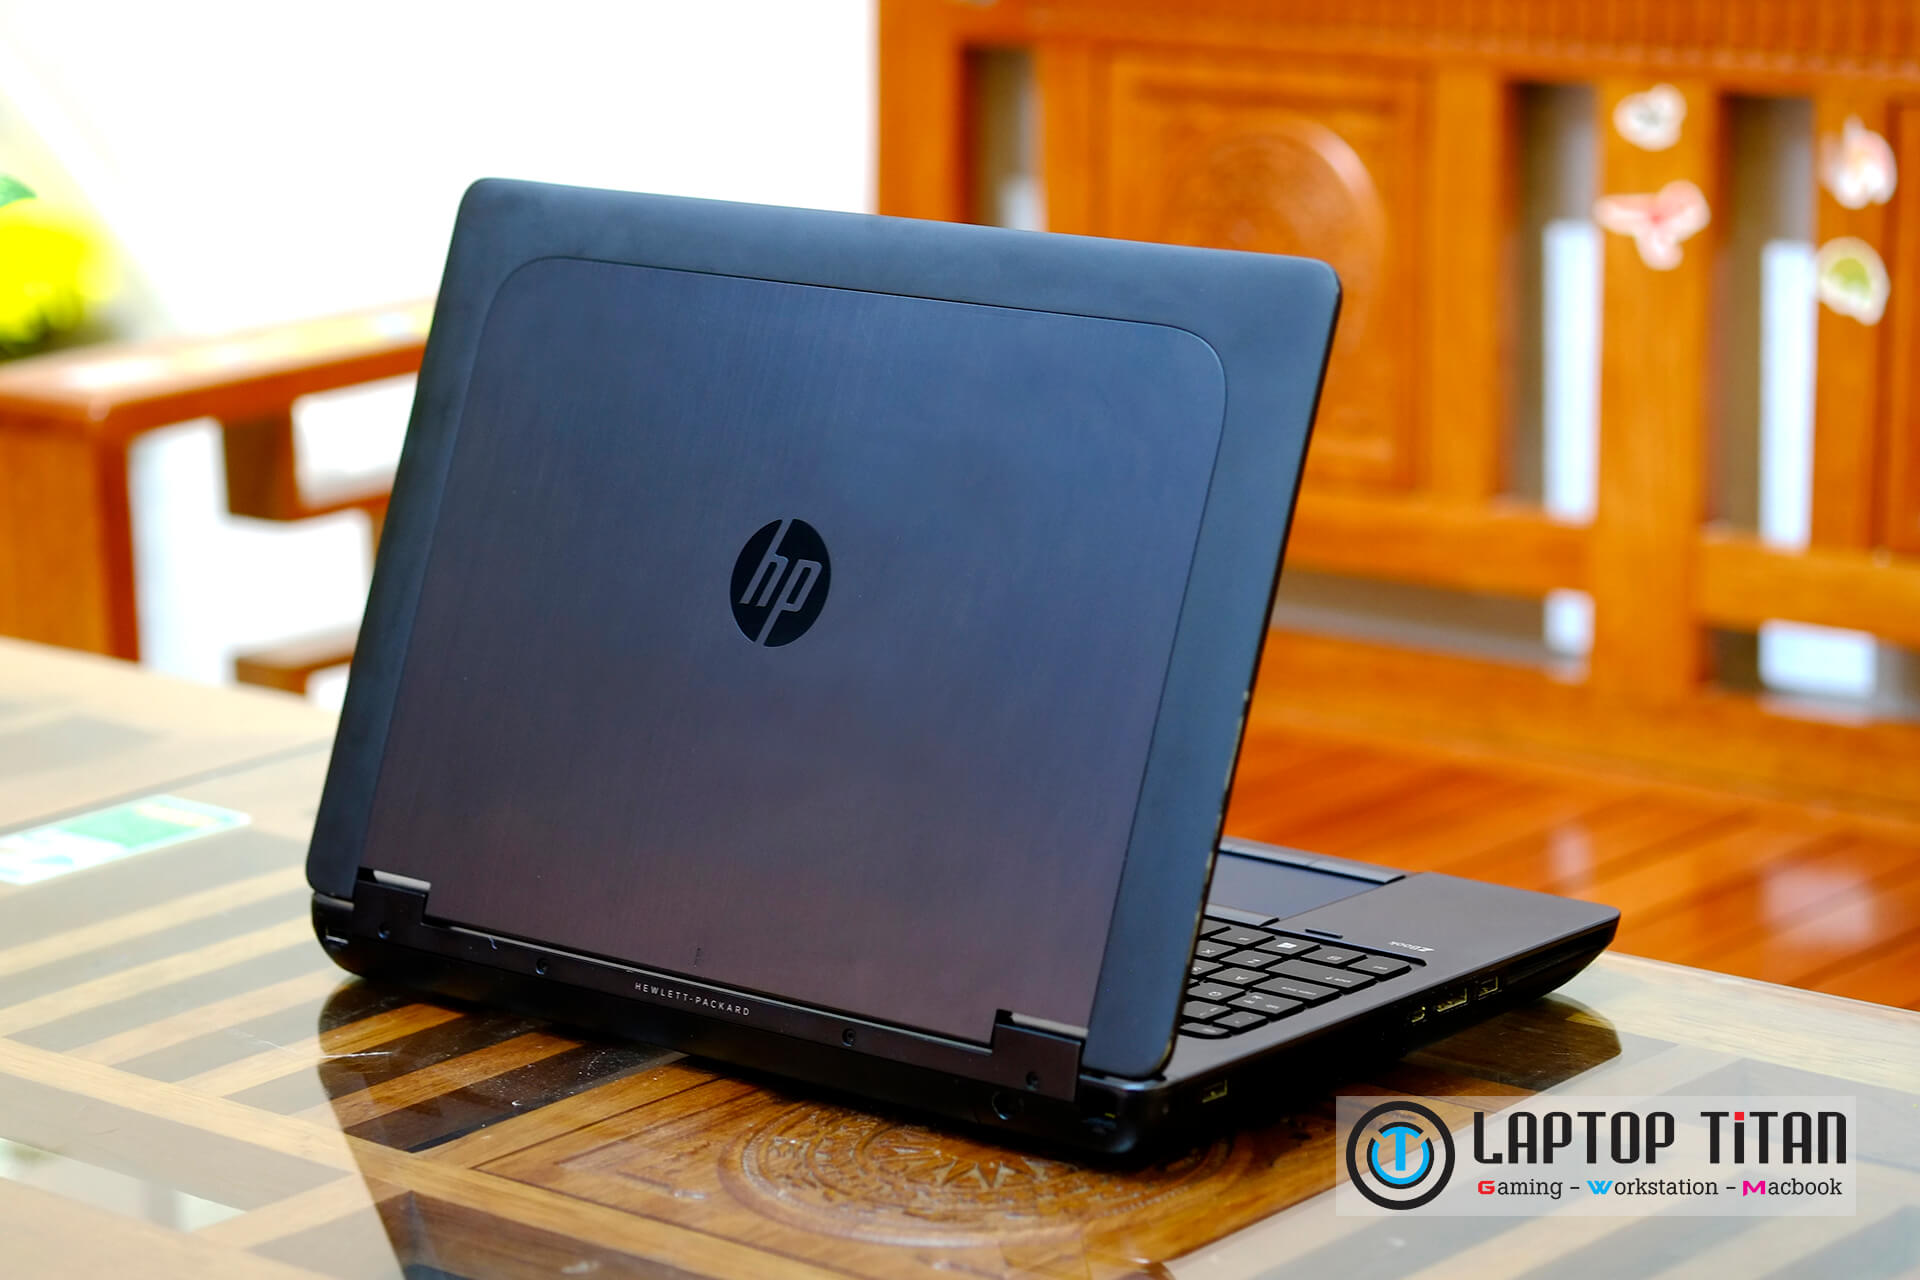 HP Zbook 15 G2 Core i7 4800MQ / 8GB / 128GB + 500GB / nVidia Quadro K1100M / 15. 14827138_HP-Zbook-15-G2-4